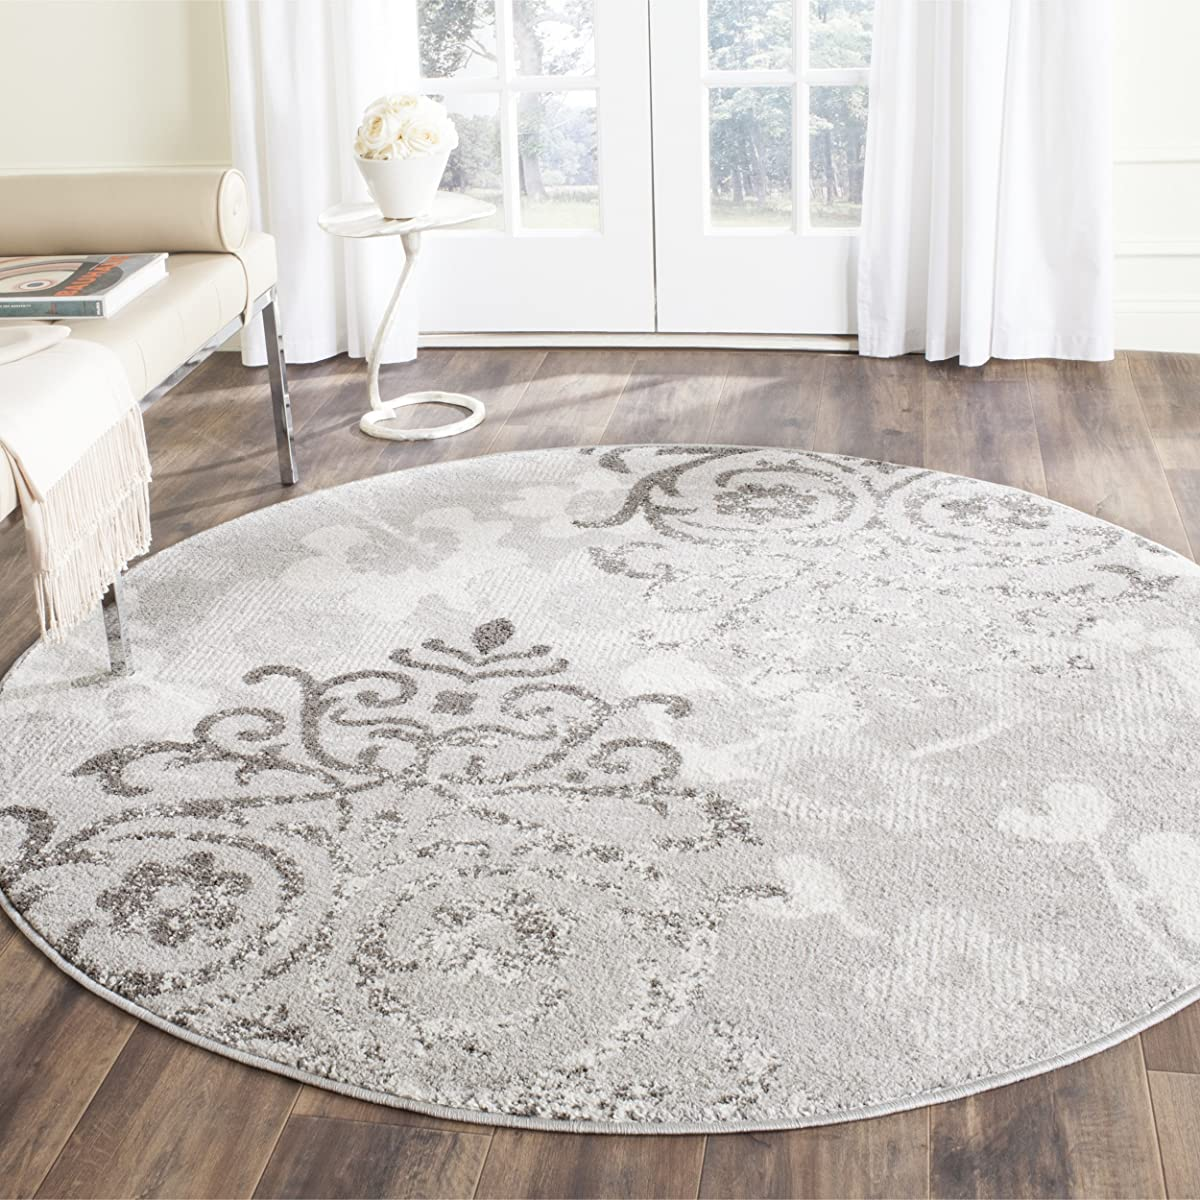 Safavieh Adirondack Collection ADR114B Silver and Ivory Contemporary Chic Damask Round Area Rug (6 Diameter)